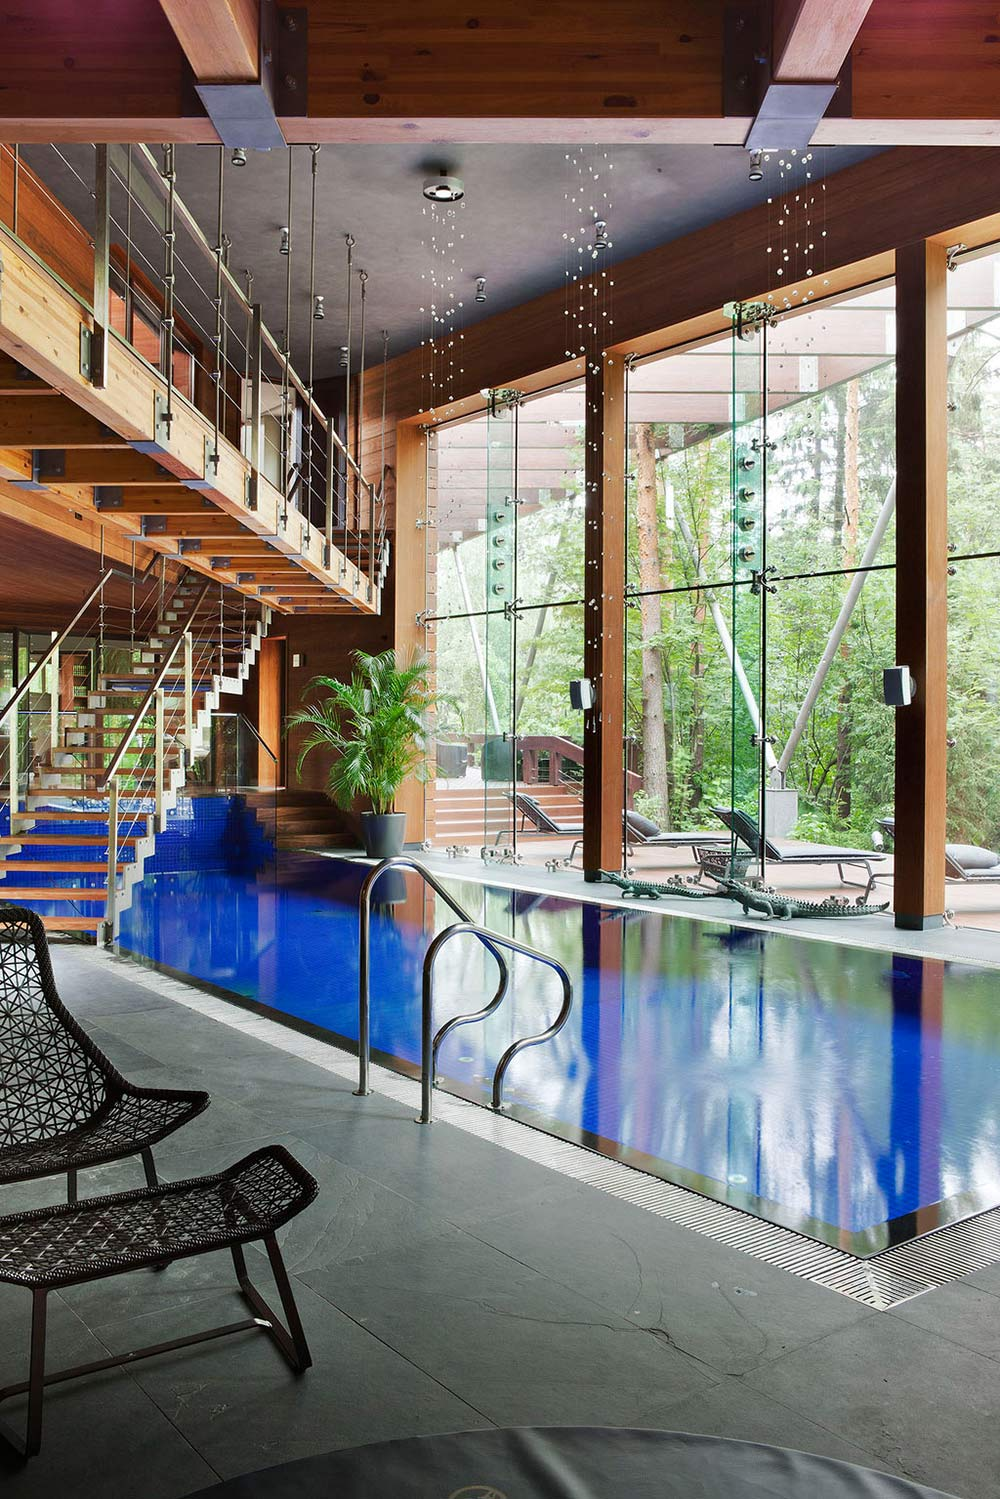 Stairs Over Pool, Sophisticated House Near Moscow by Olga Freiman